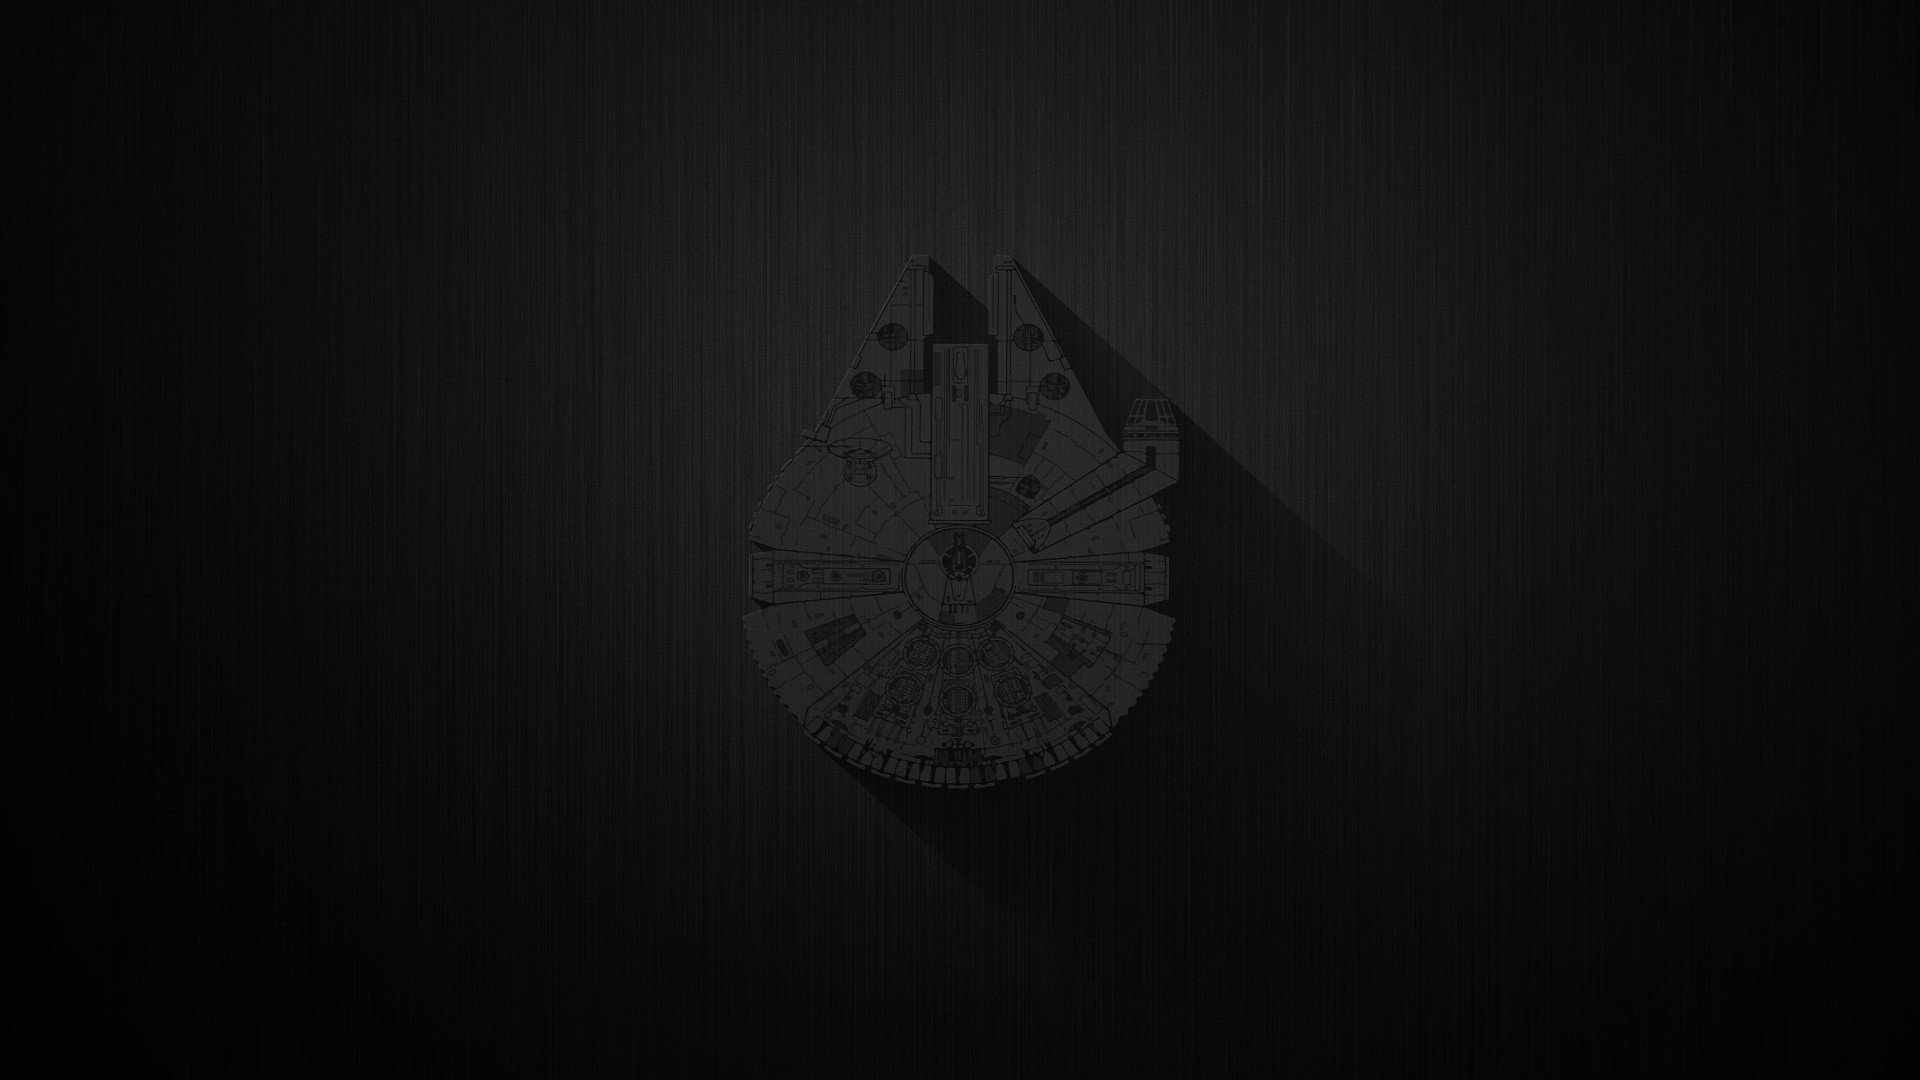 Star Wars Black And White Wallpapers Top Free Star Wars Black And White Backgrounds Wallpaperaccess